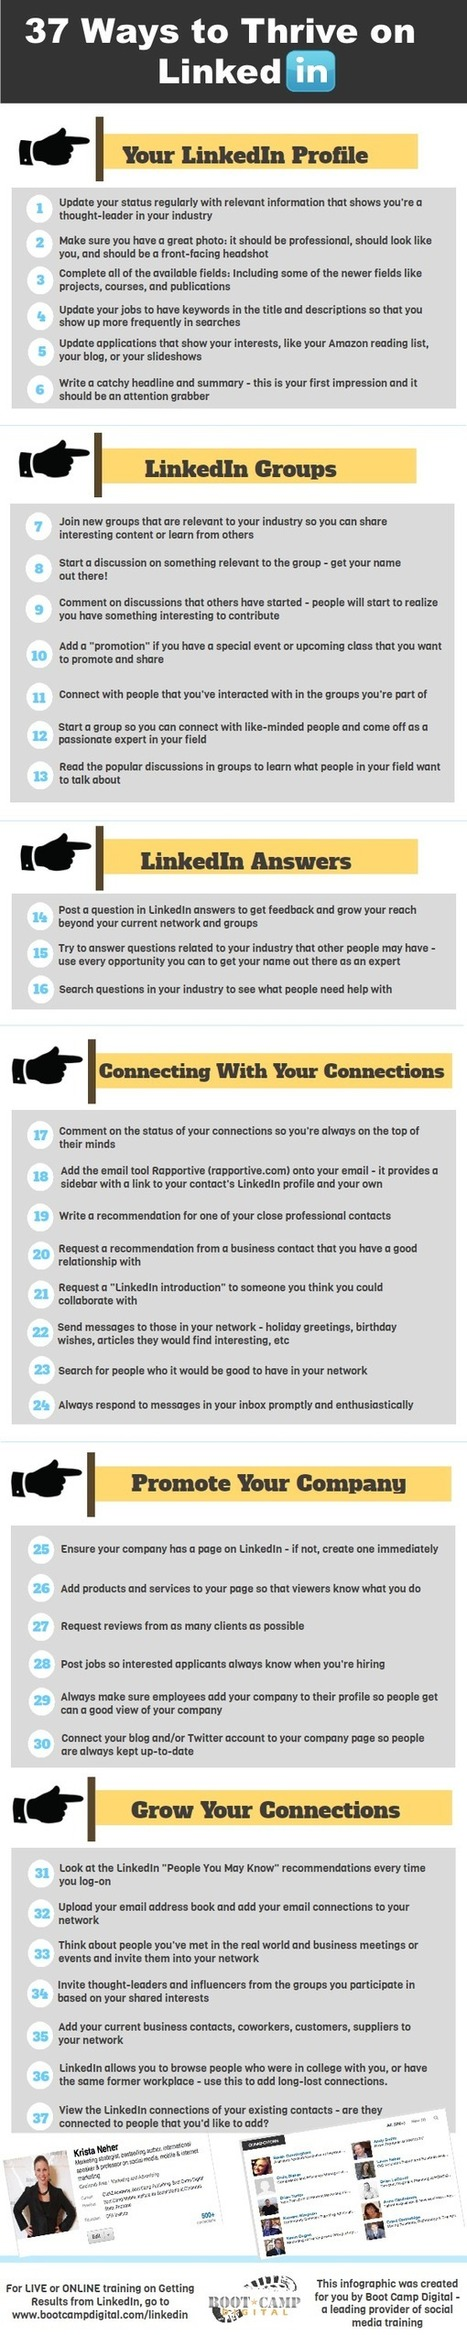 37 Ways to Thrive on LinkedIn [Infographic] | Awesome Tips | Scoop.it